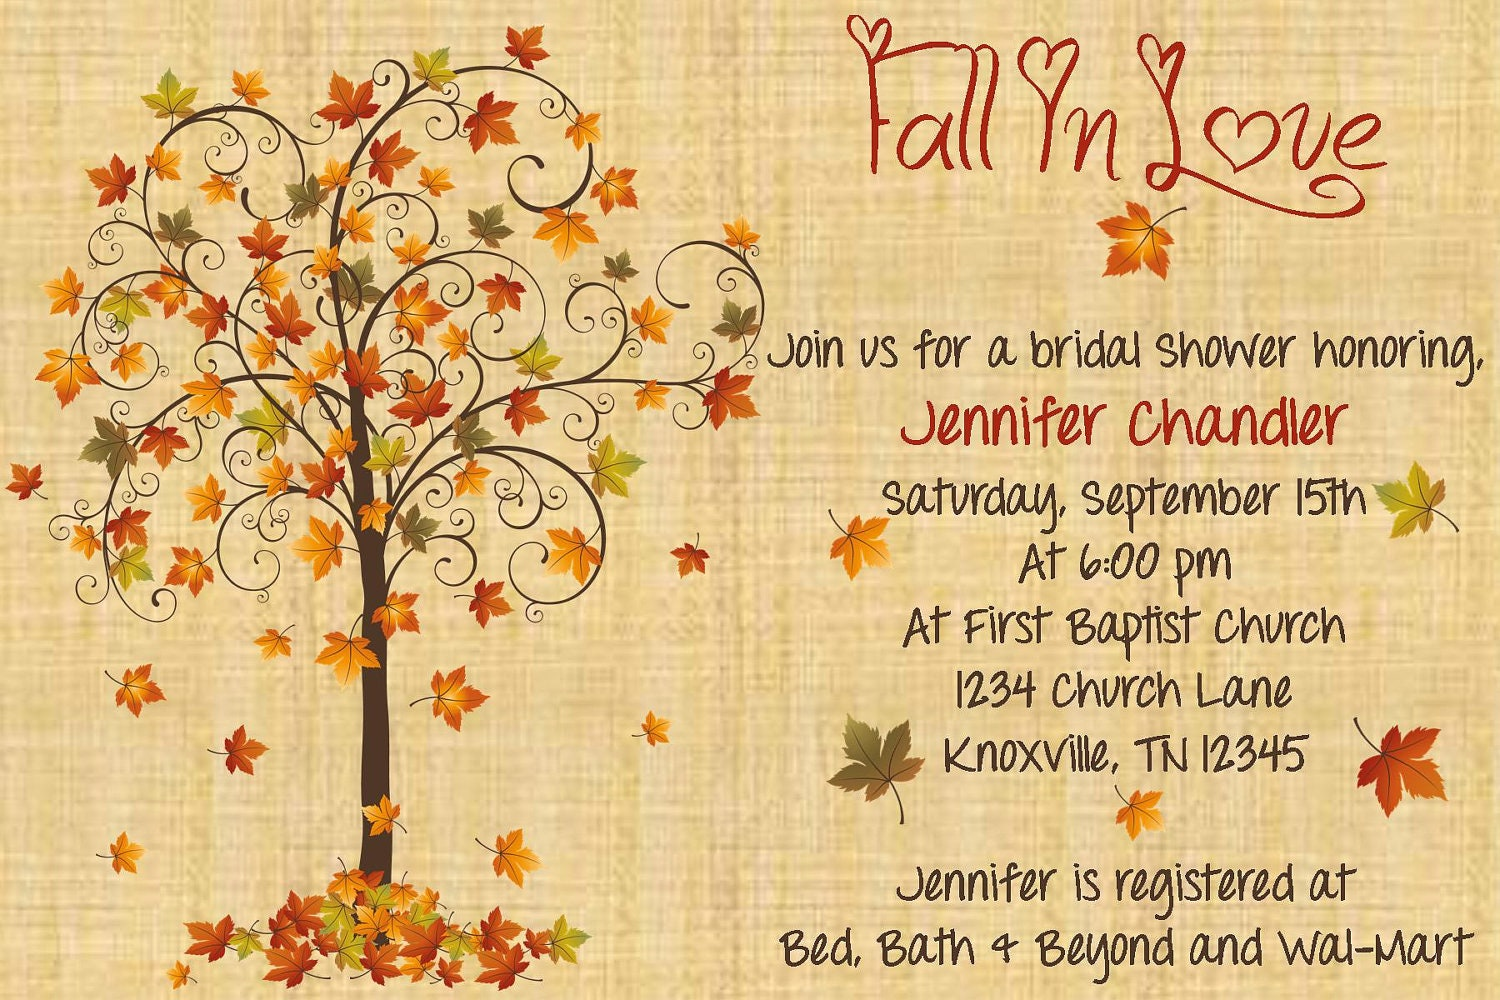 Fall Wedding Shower Invitations: Fall In Love Bridal Shower Invitation By WhateverIs On Etsy